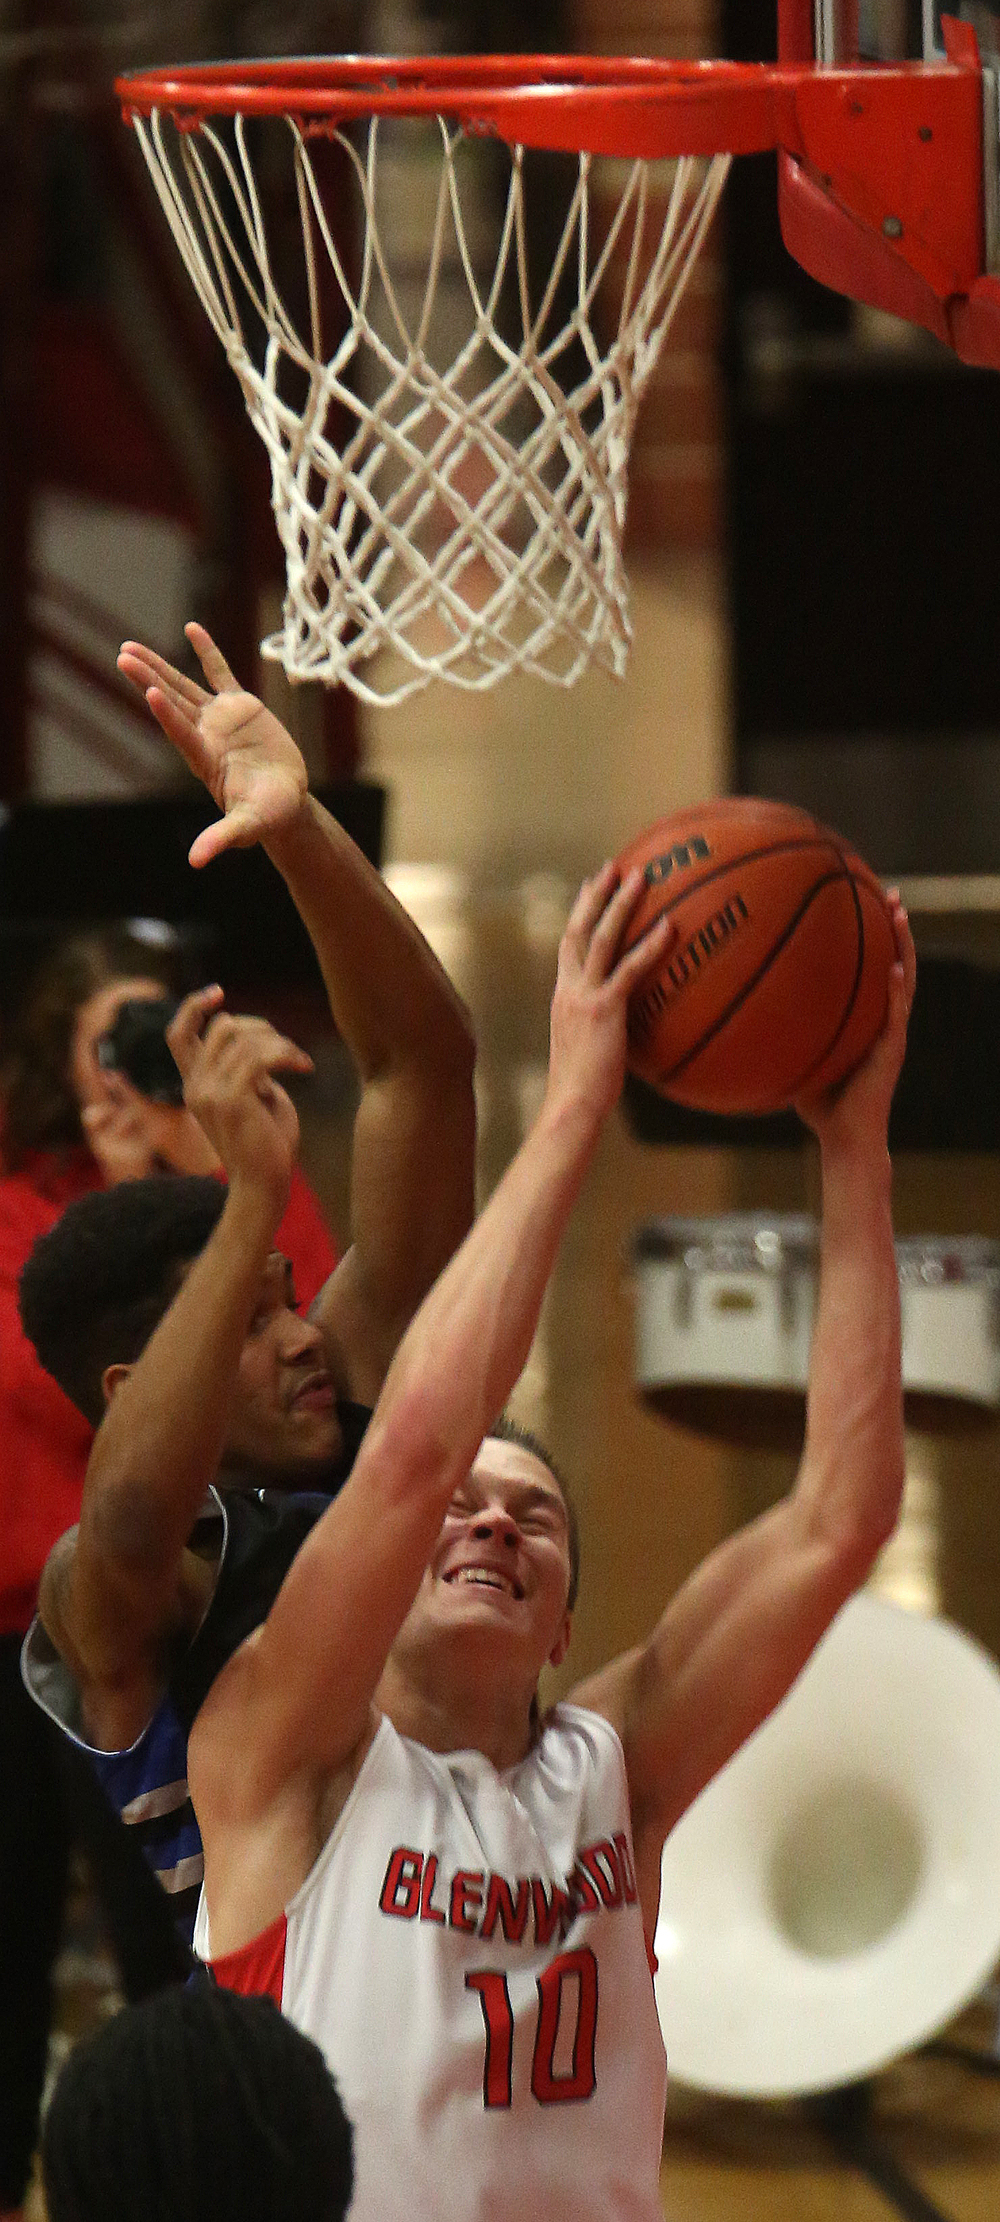 Glenwood player Cole Harper pulls down a rebound. Glenwood defeated Decatur MacArthur 61-41 in boys basketball action at the Titan's gym in Chatham on Friday evening, Jan. 30, 2015. David Spencer/The State Journal-Register